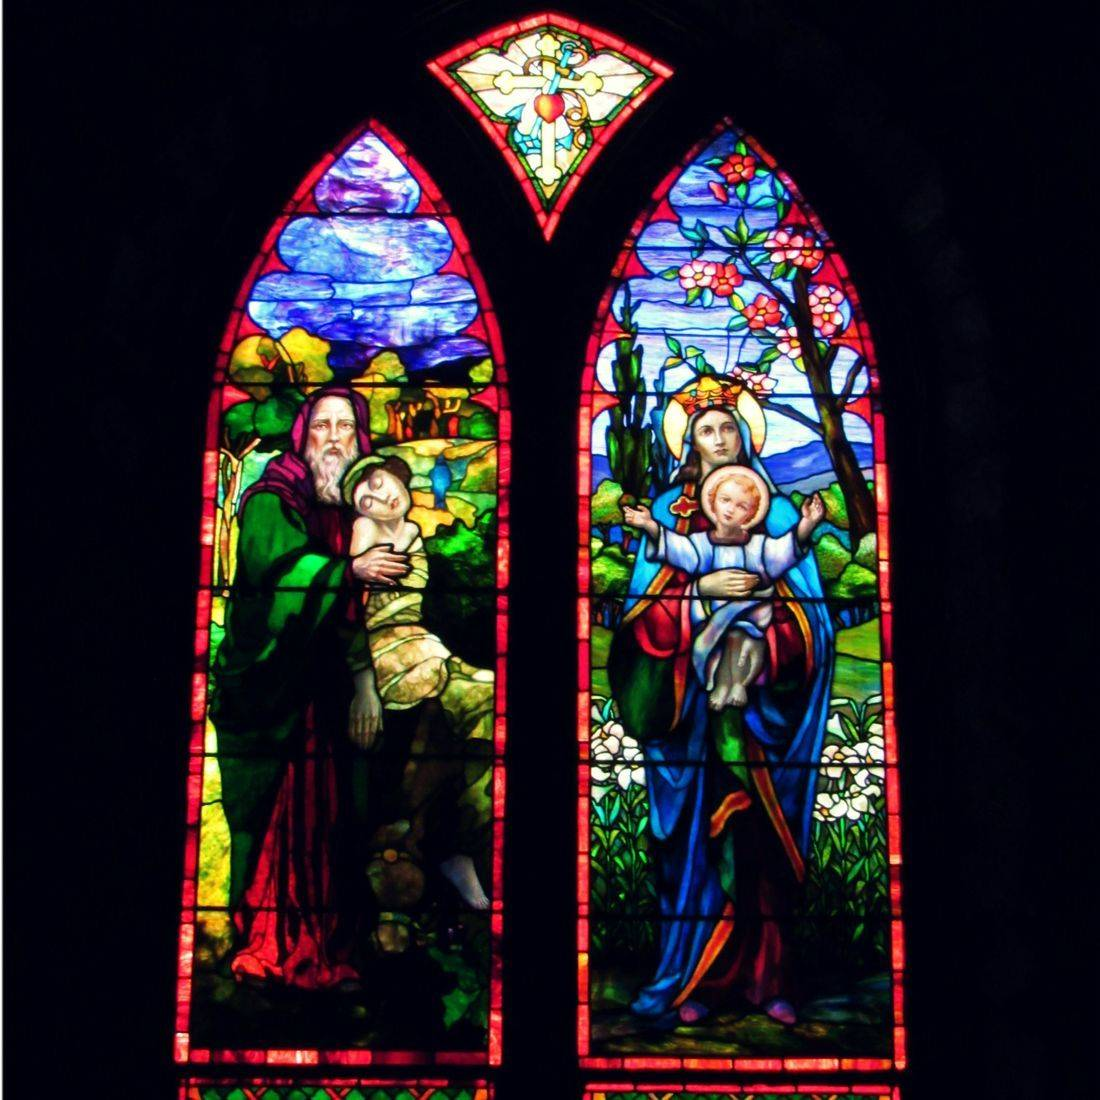 St. Francis, Episcopal, Church, North Carolina, Stain Glass, Window, Religion